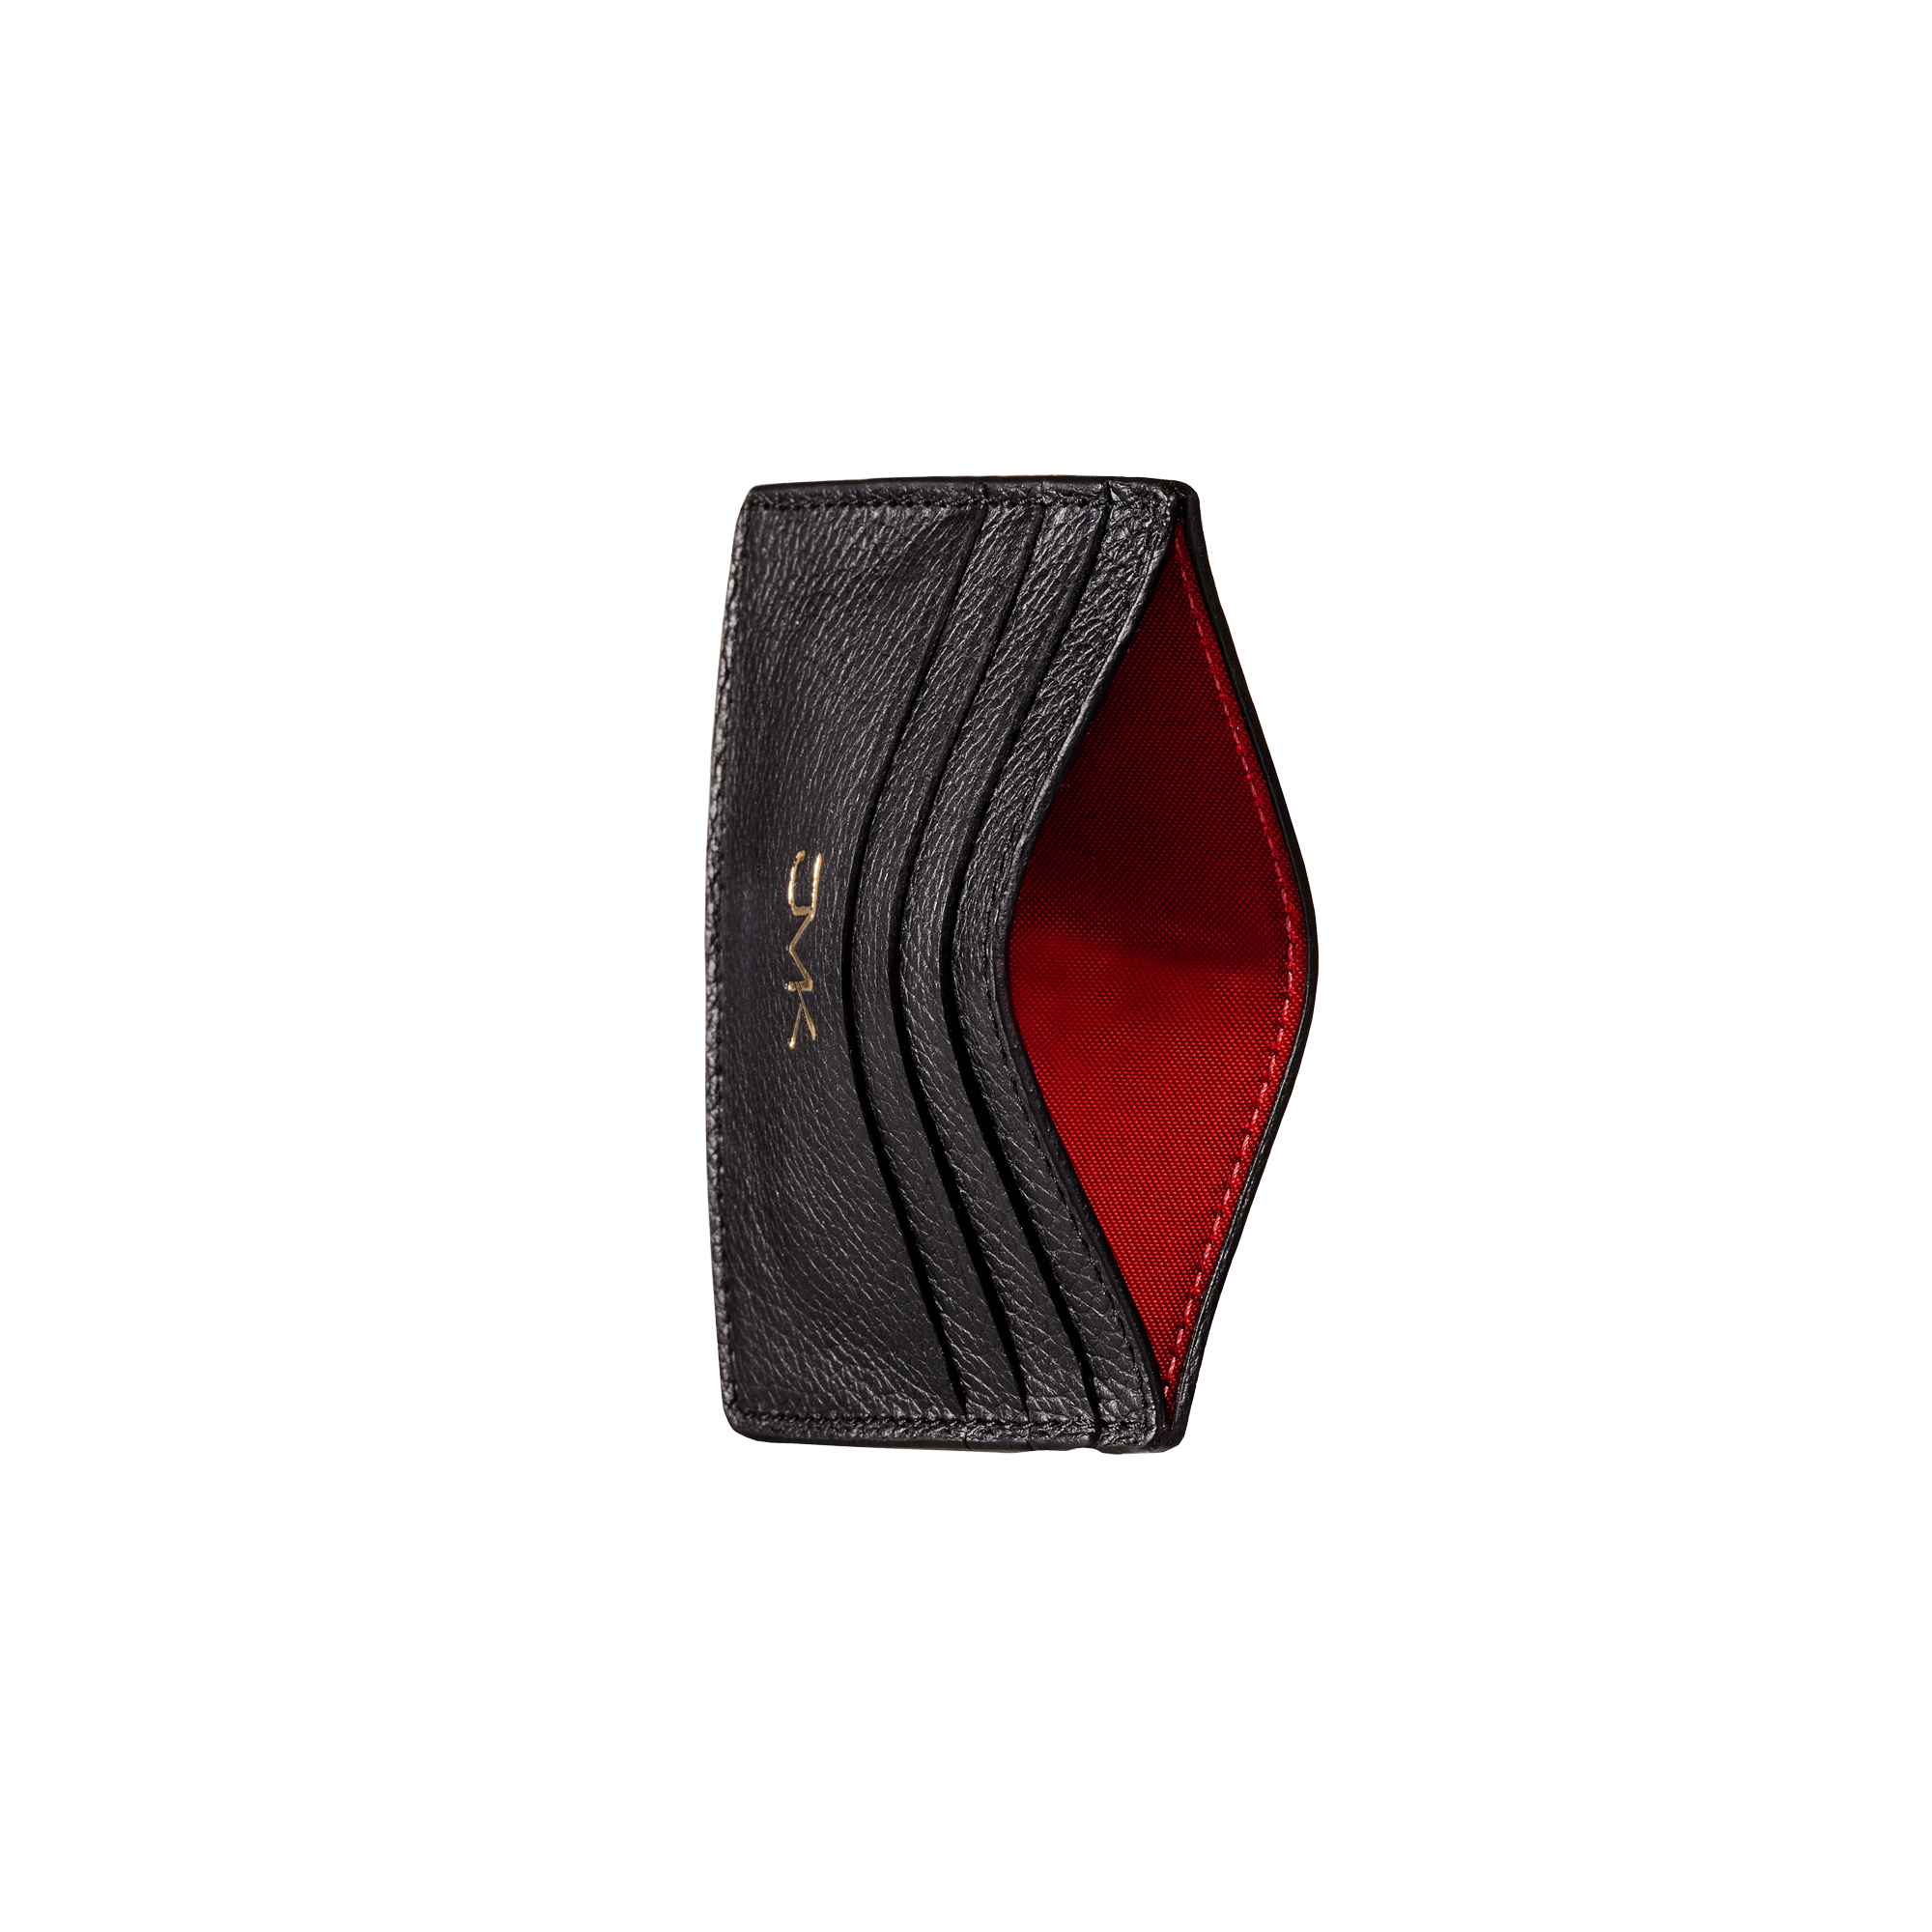 Card Holder - 6 Slots, Grain Leather Black/Red, MAISON JMK-VONMEL Luxe Gifts